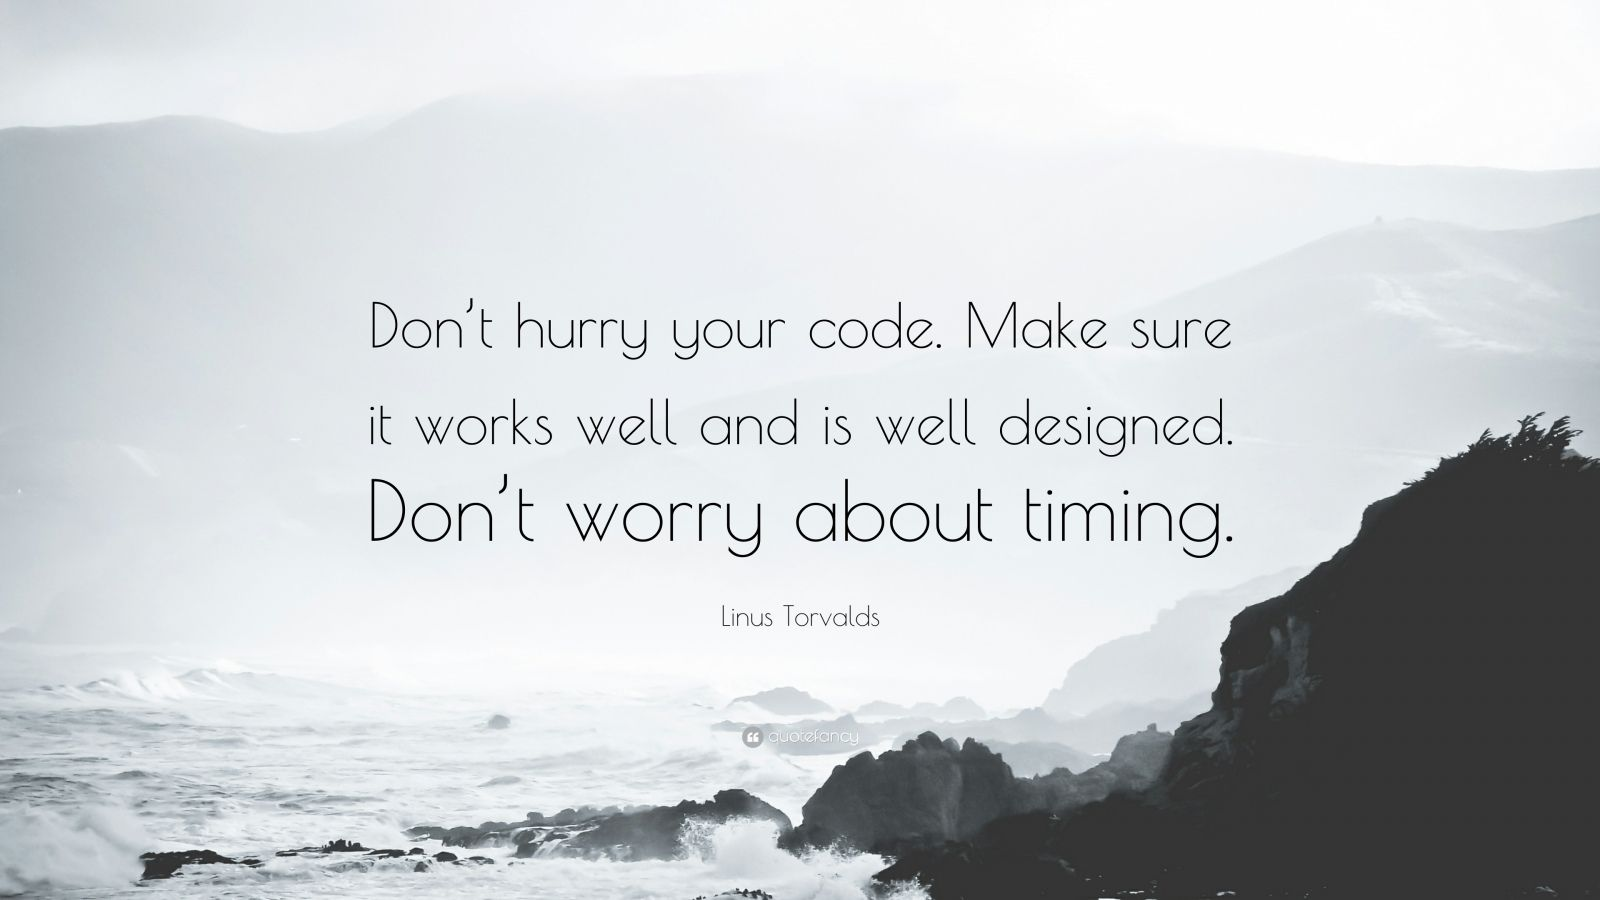 """Linus Torvalds Quote: """"Don't hurry your code. Make sure it works well and is well designed. Don't worry about timing."""""""